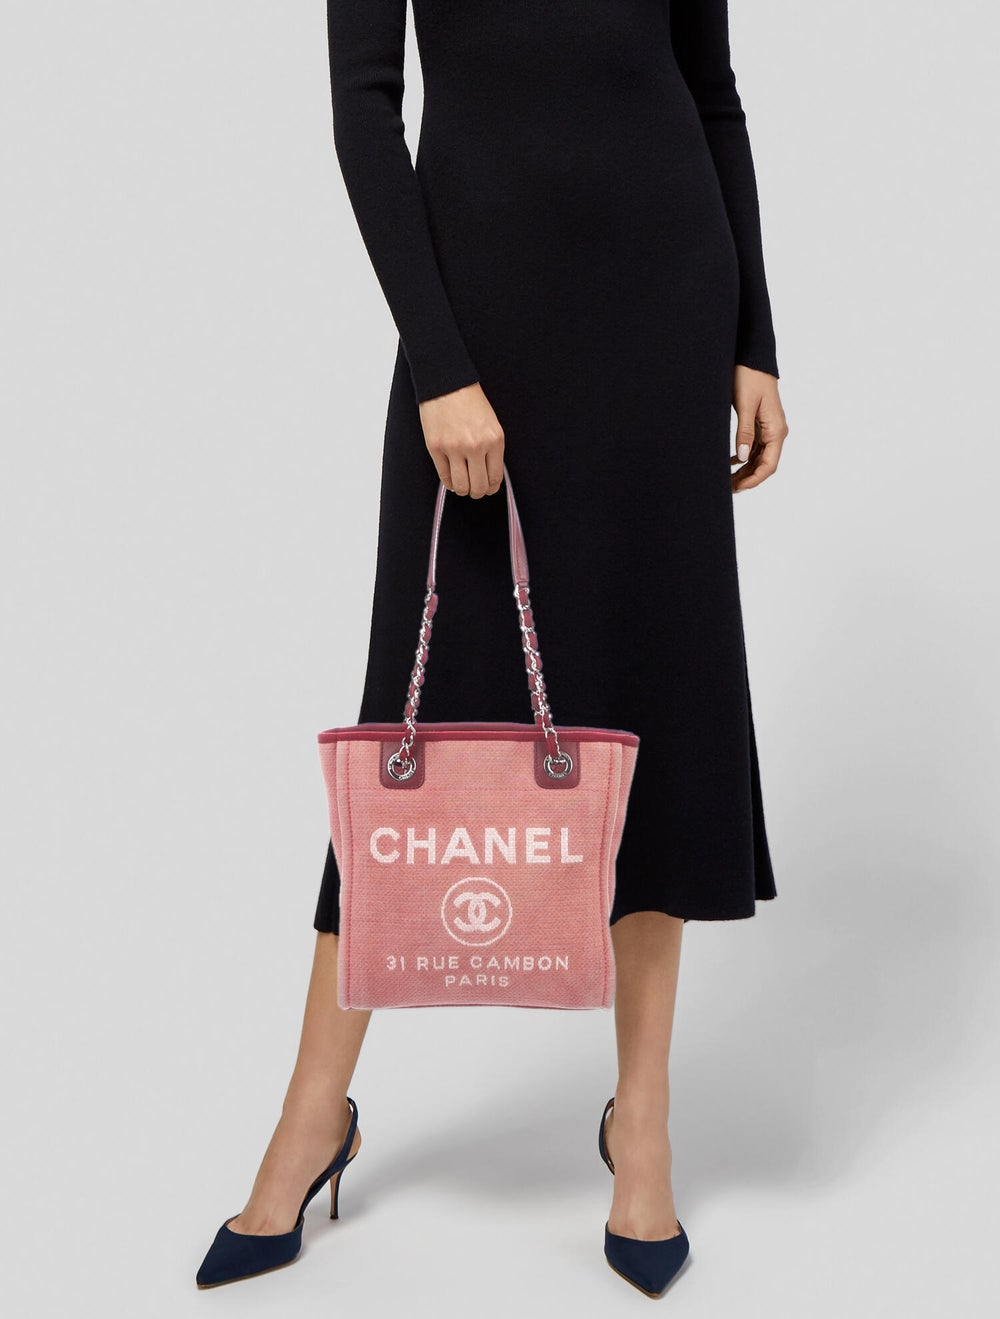 Chanel Small Deauville Bag Pink - image 2